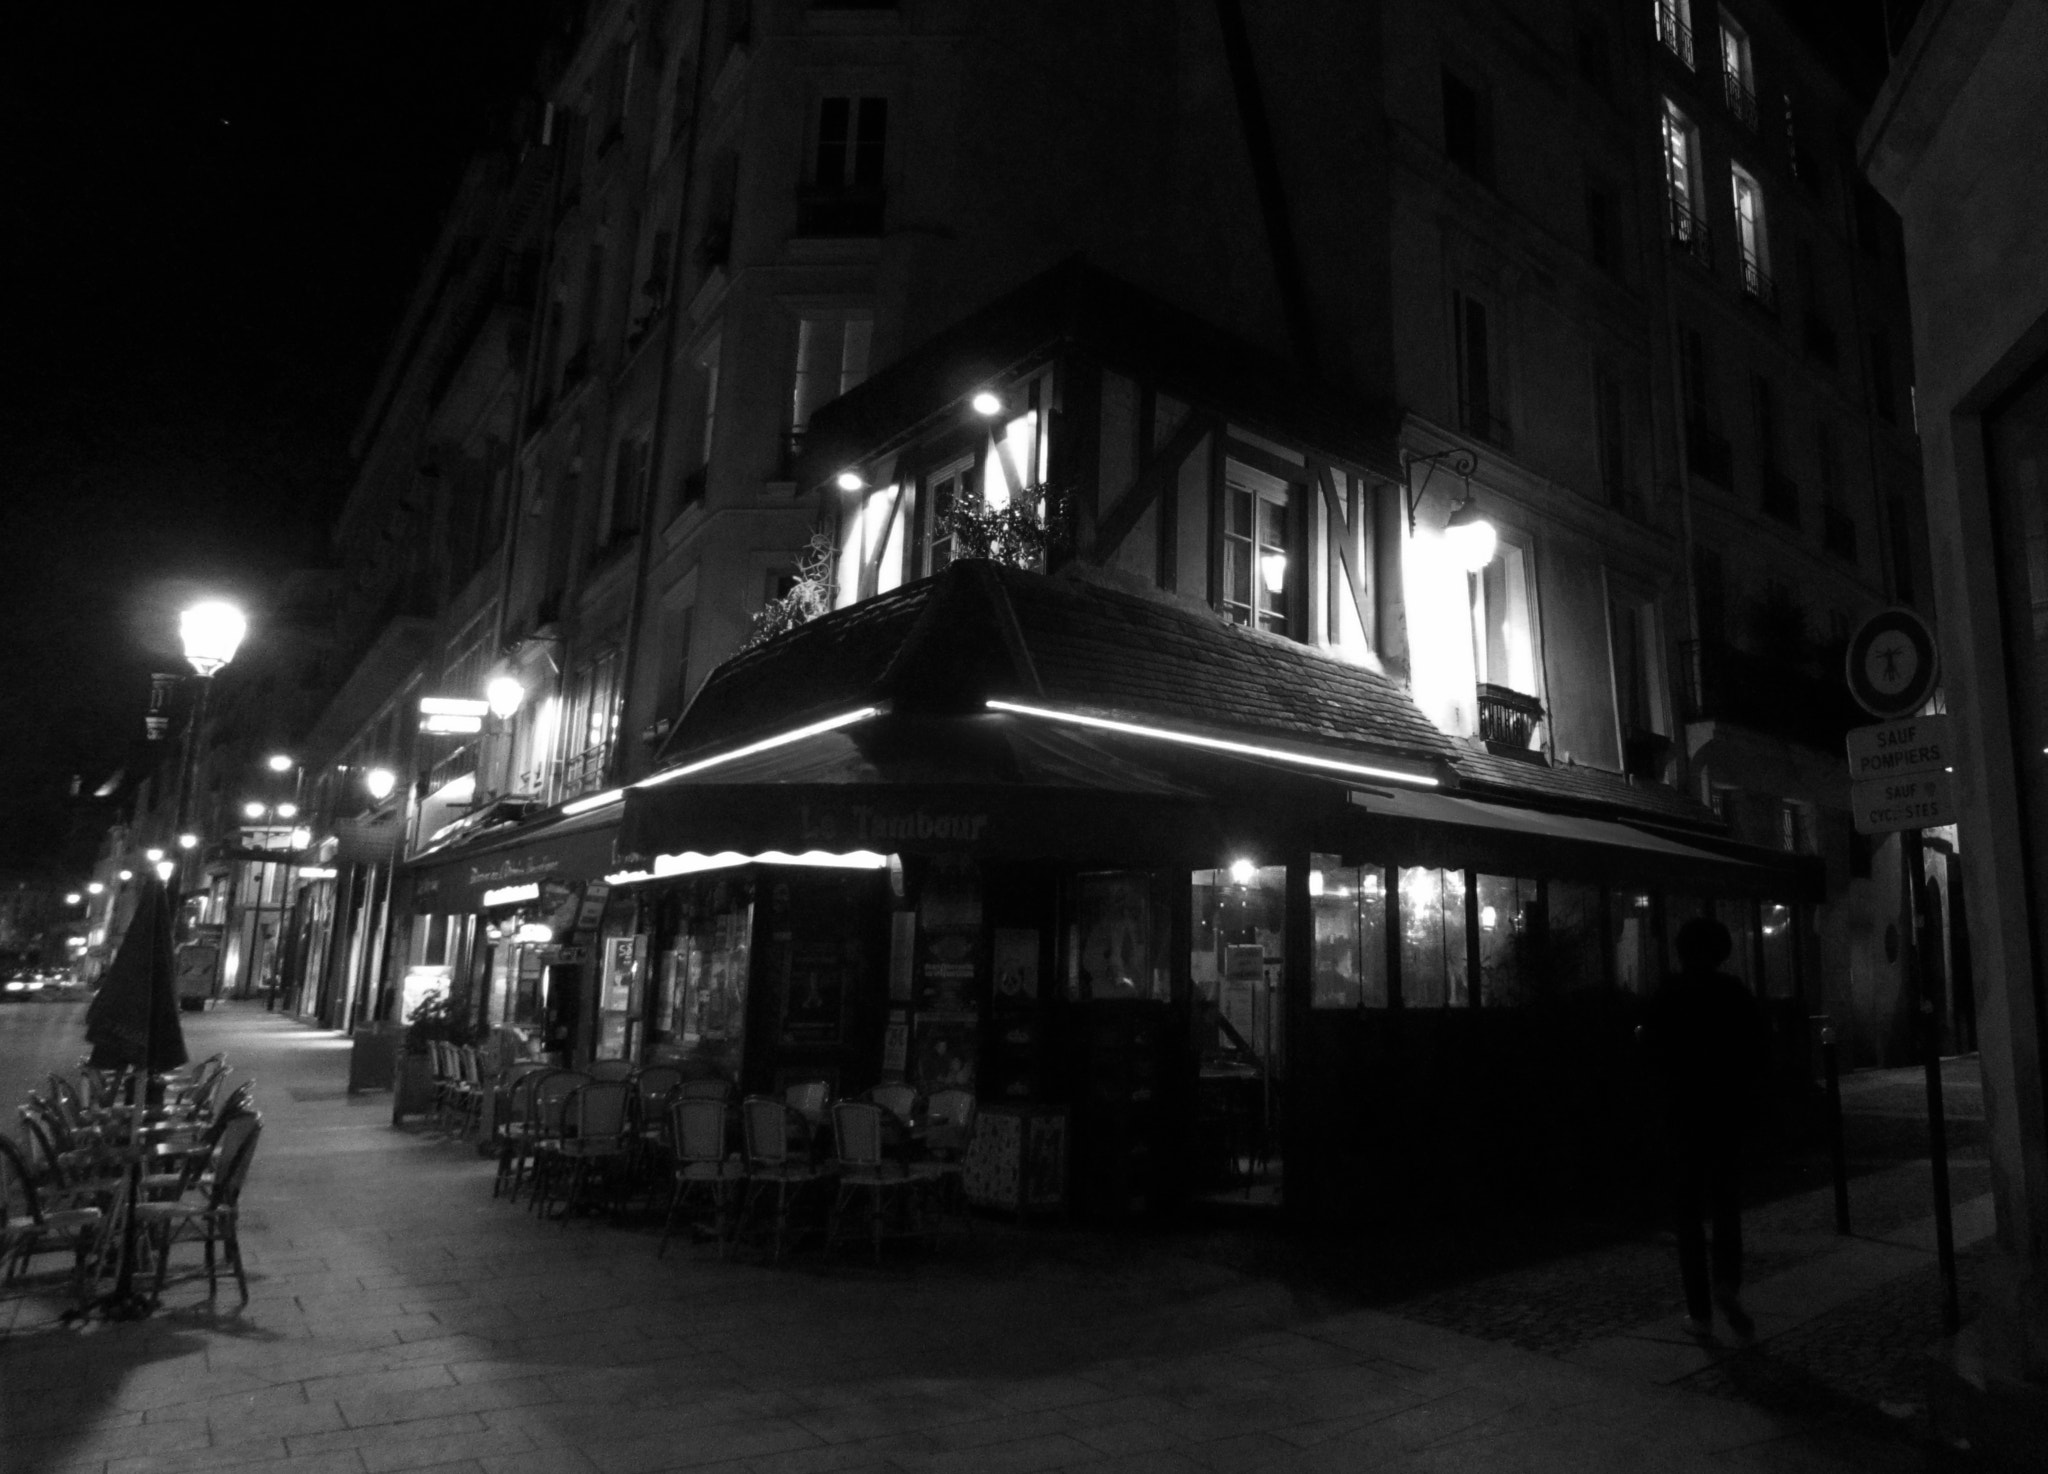 Photograph late night in paris by Kristin Segbefia on 500px